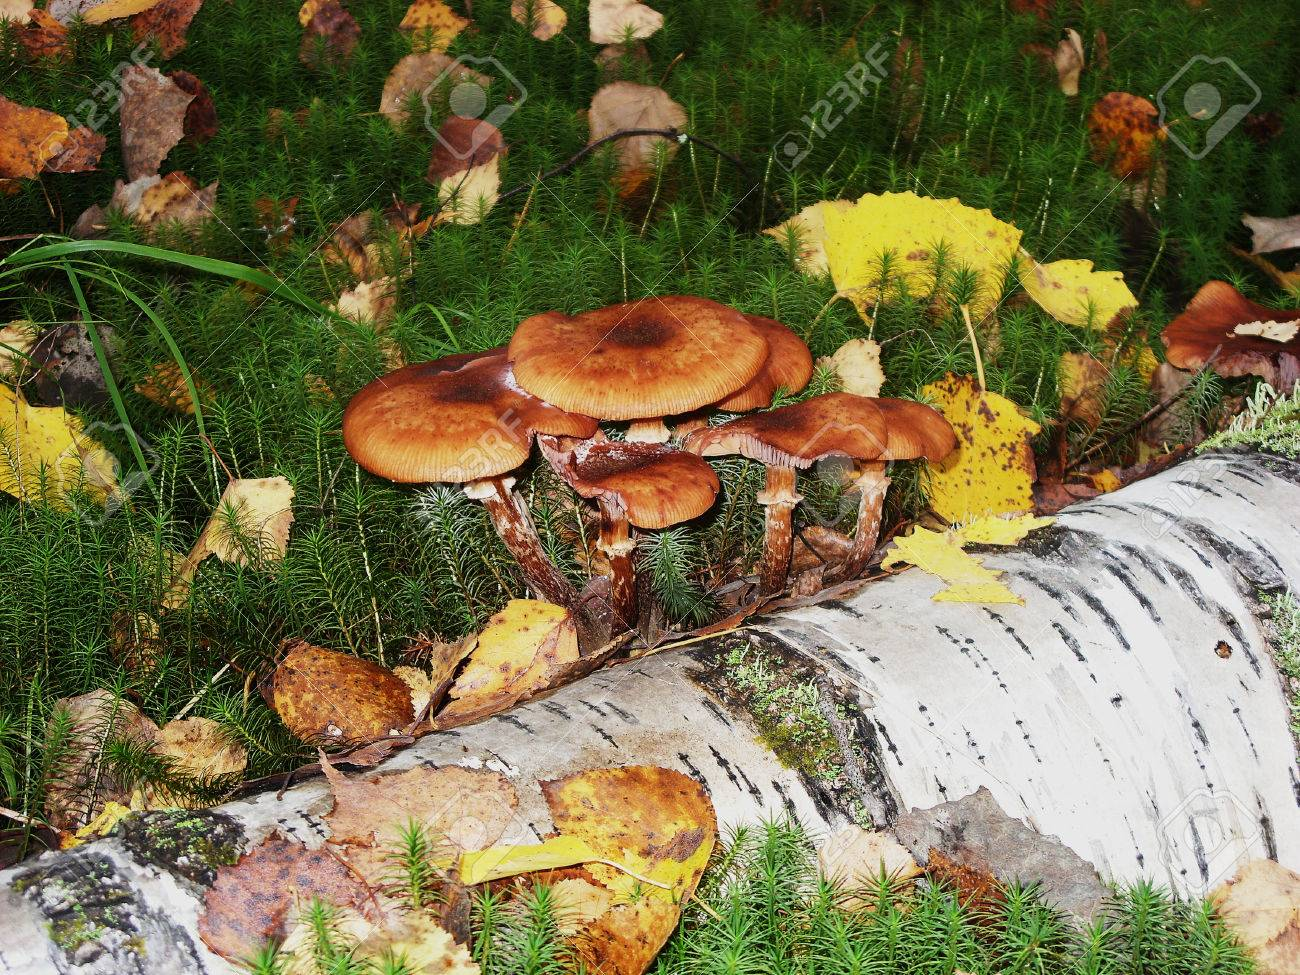 On moss is growing a lot of poisonous inedible and dangerous mushrooms - 74942305